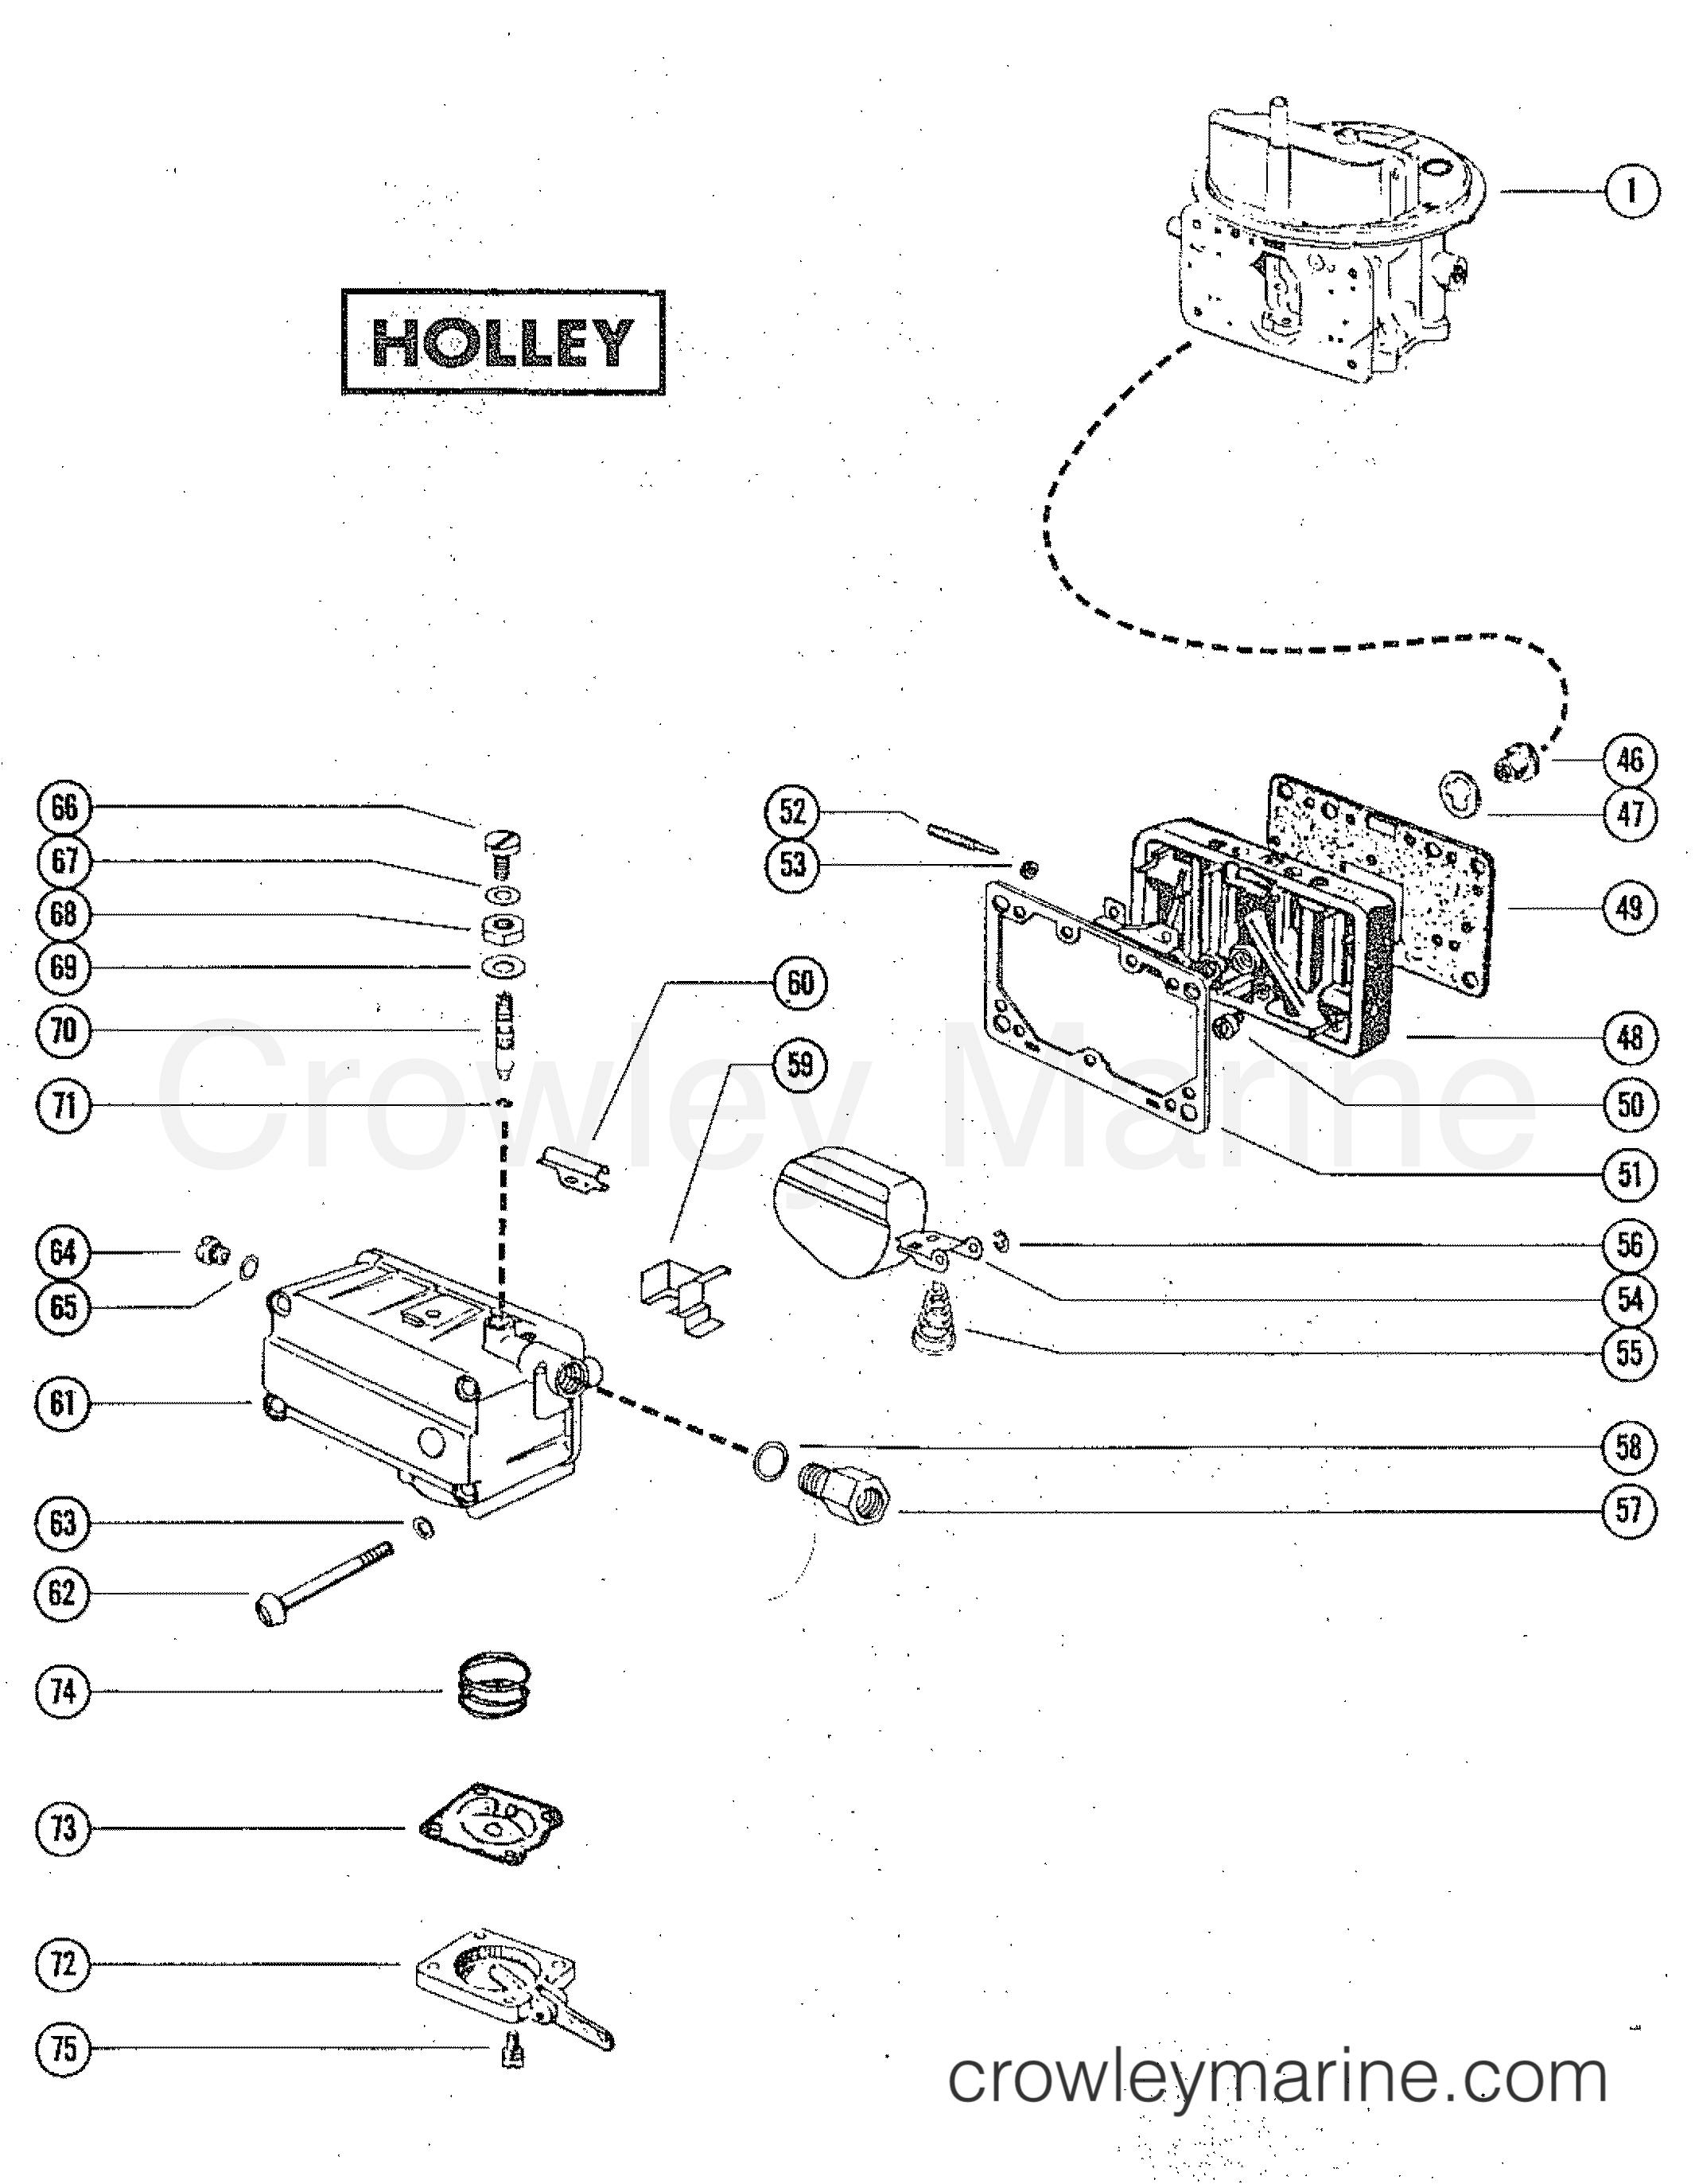 carburetor assembly holley 1975 mercruiser 888 2888205. Black Bedroom Furniture Sets. Home Design Ideas